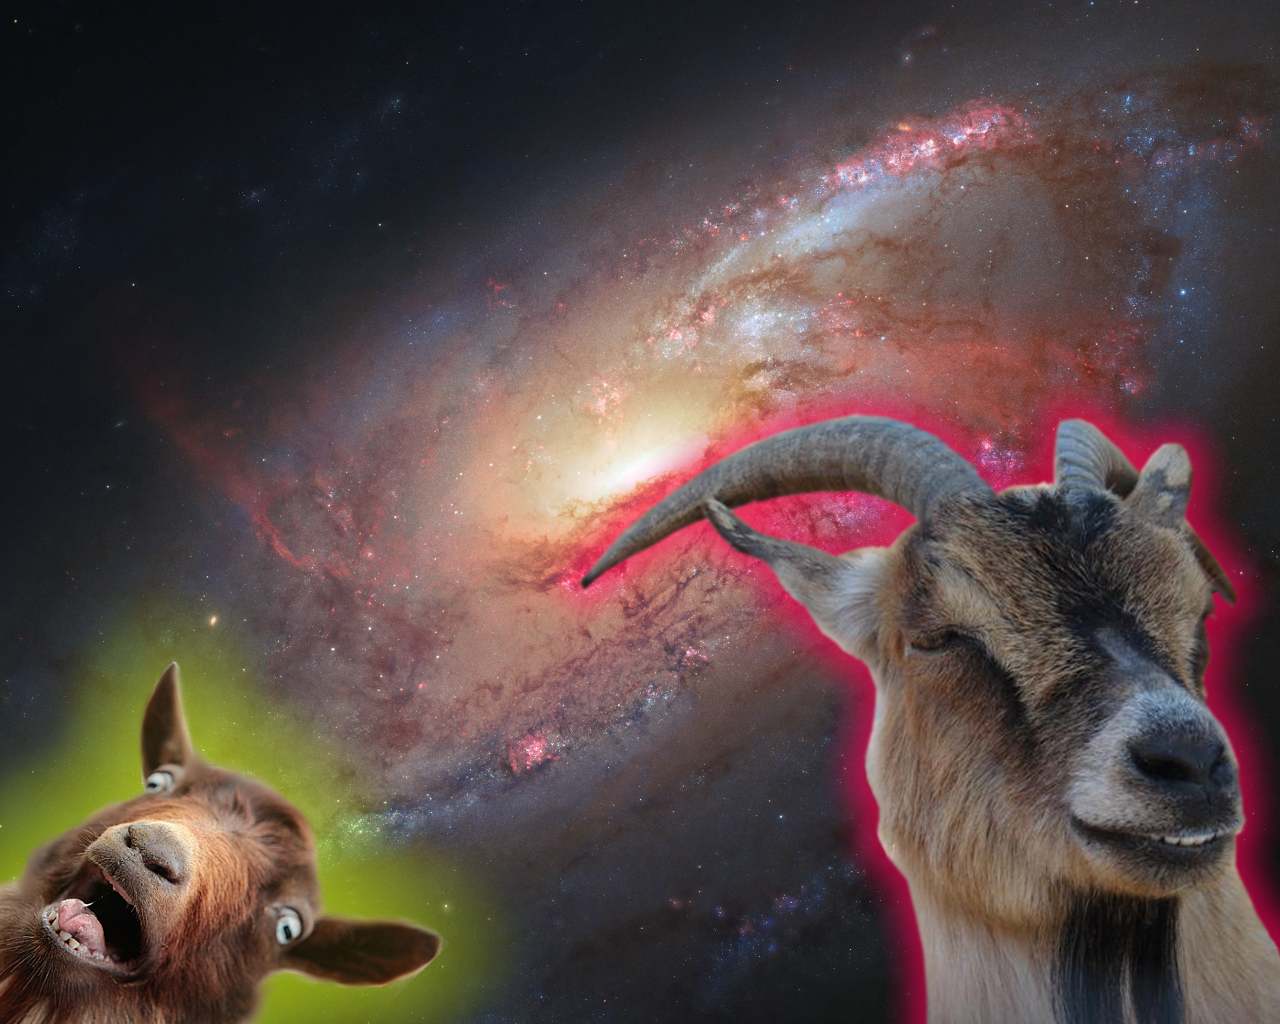 A picture of a galaxy with 2 goats seeming to float in space.  One has a smirky grin and a redish purple aura and the other looks terrified and has a yellowish green aura